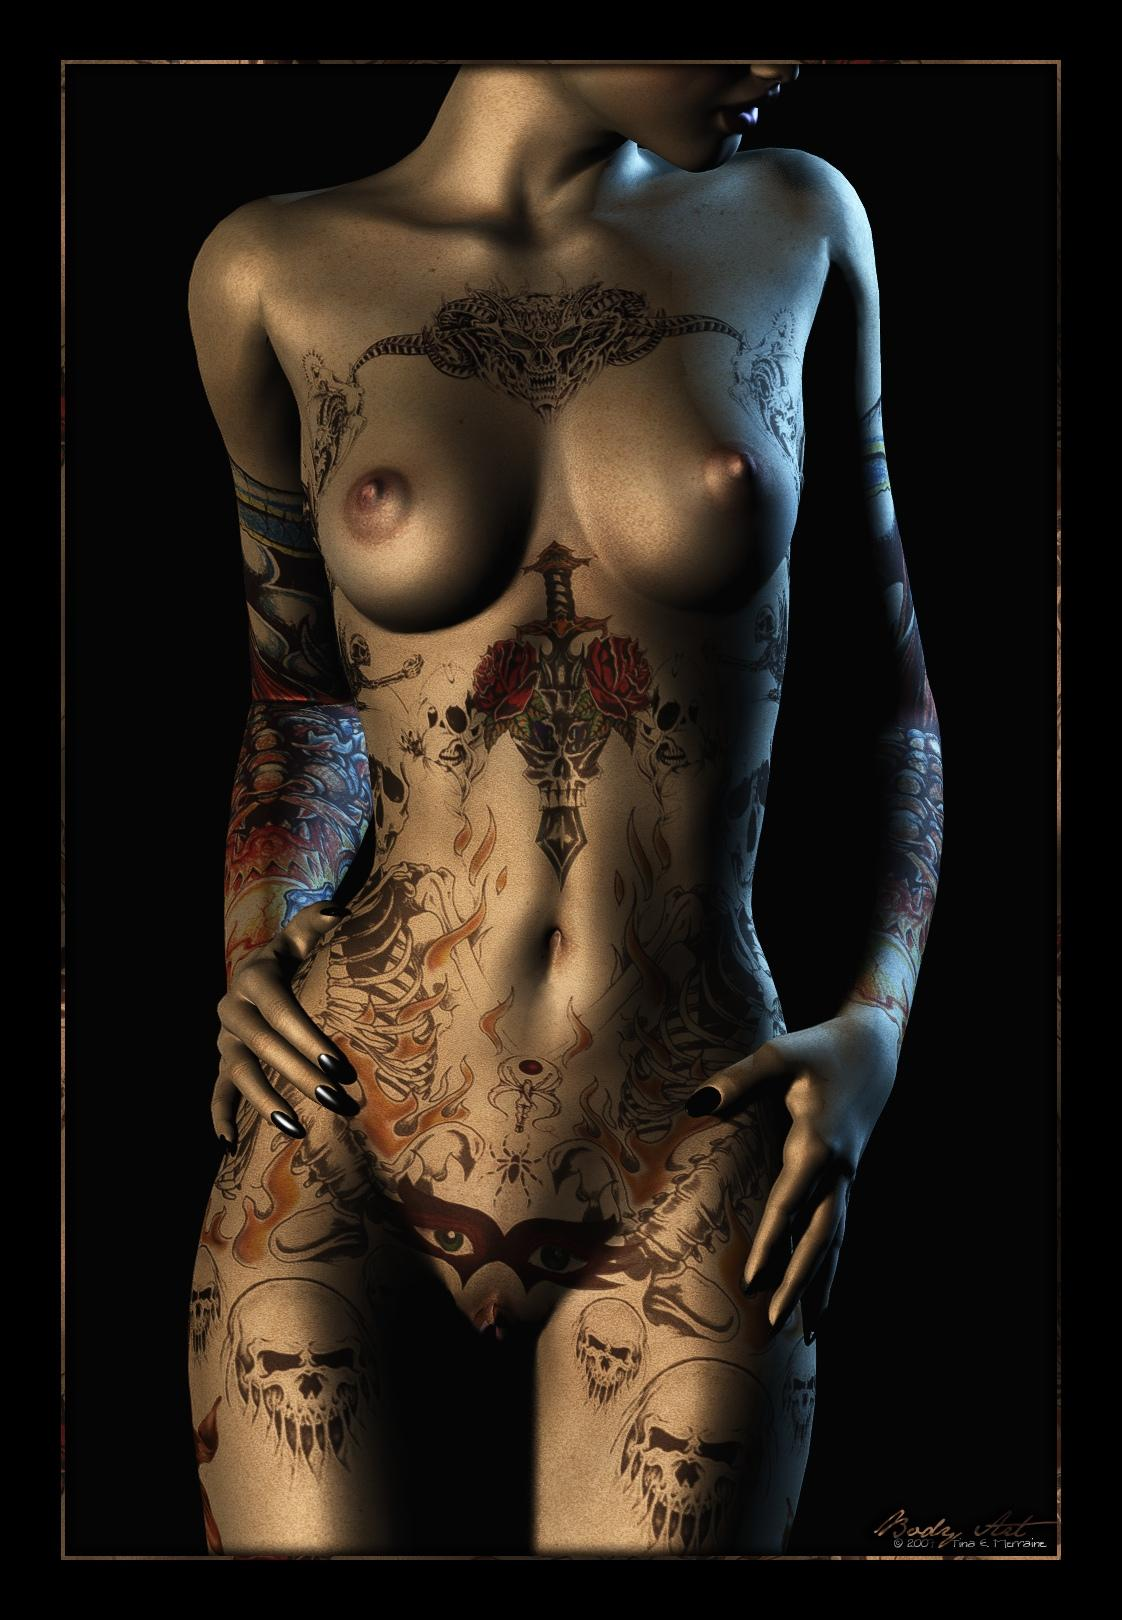 Body Art: Prelude to